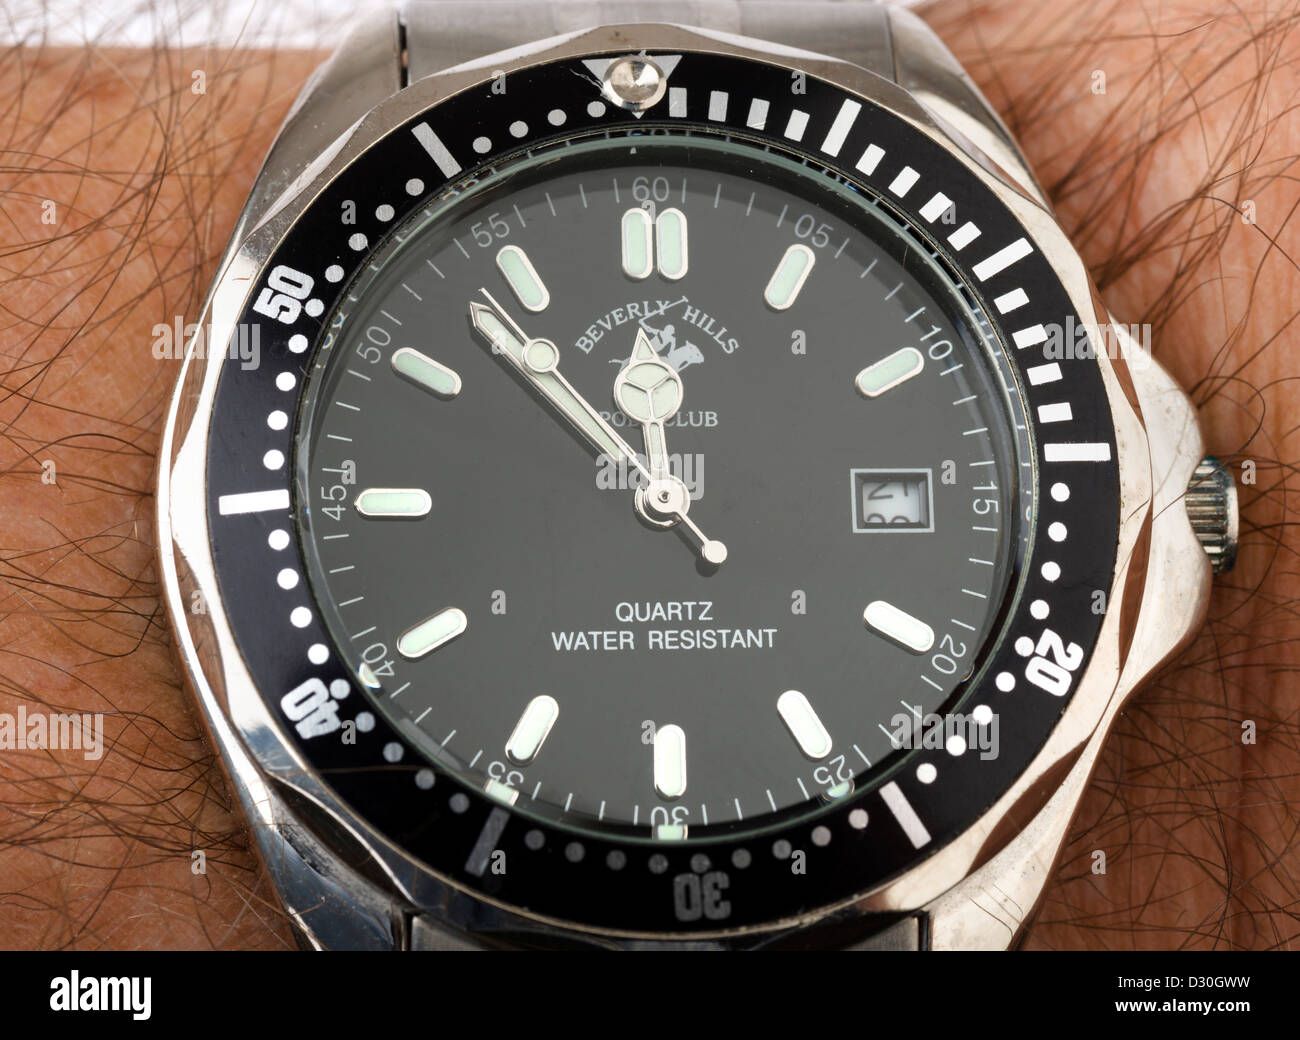 Close-up of a watch on a man's wrist - Stock Image